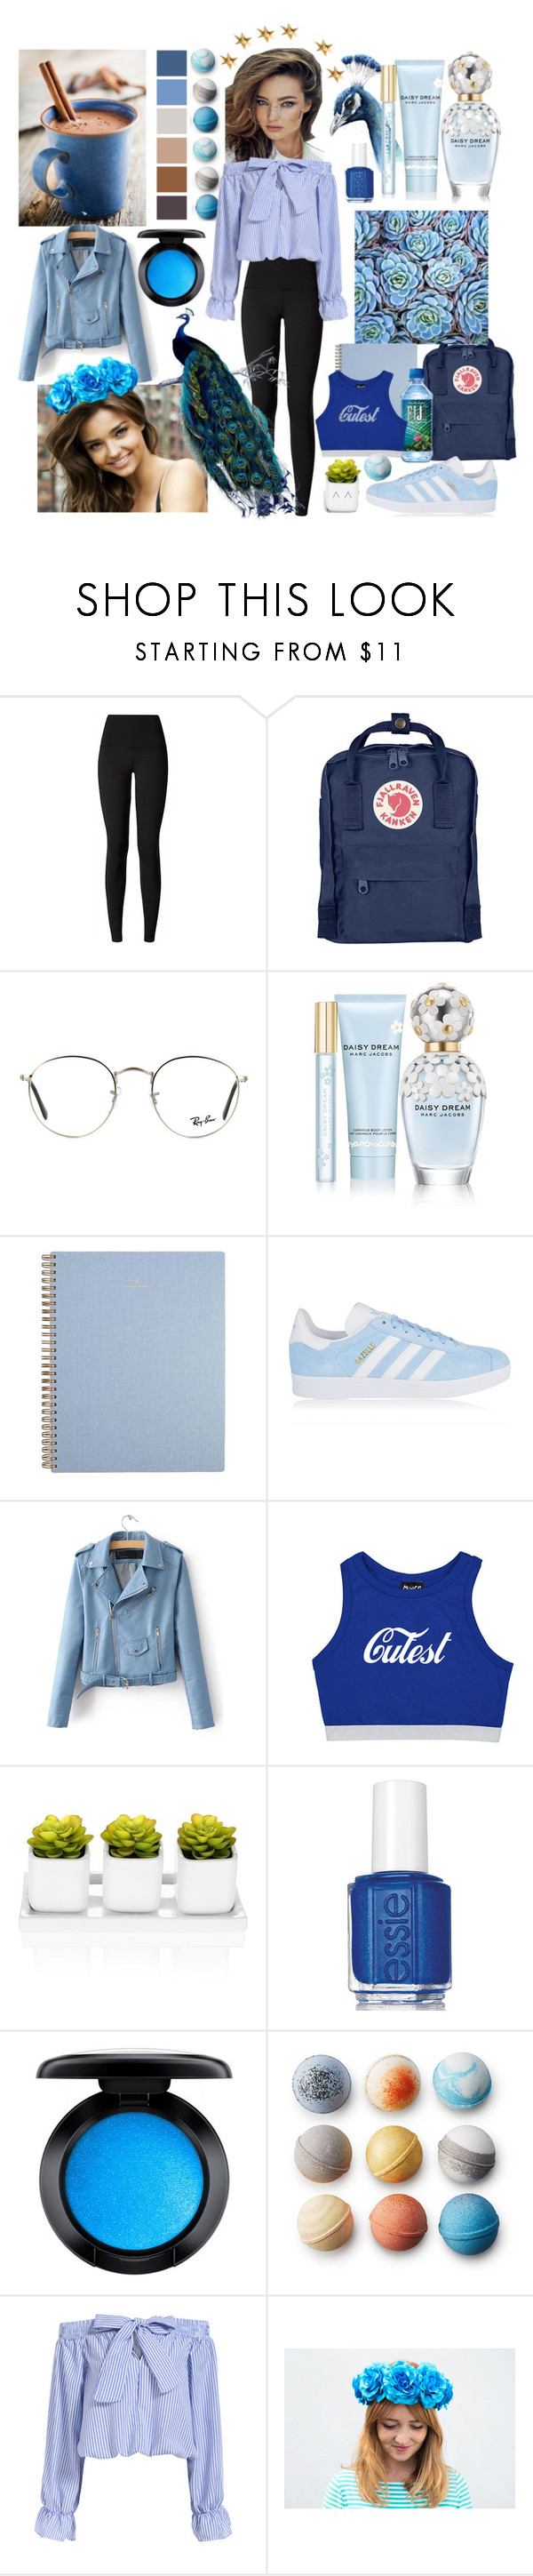 """blue like a peacock"" by anoo17k ❤ liked on Polyvore featuring Kerr®, lululemon, Fjällräven, Ray-Ban, Marc Jacobs, adidas Originals, Essie, MAC Cosmetics and Livingly"